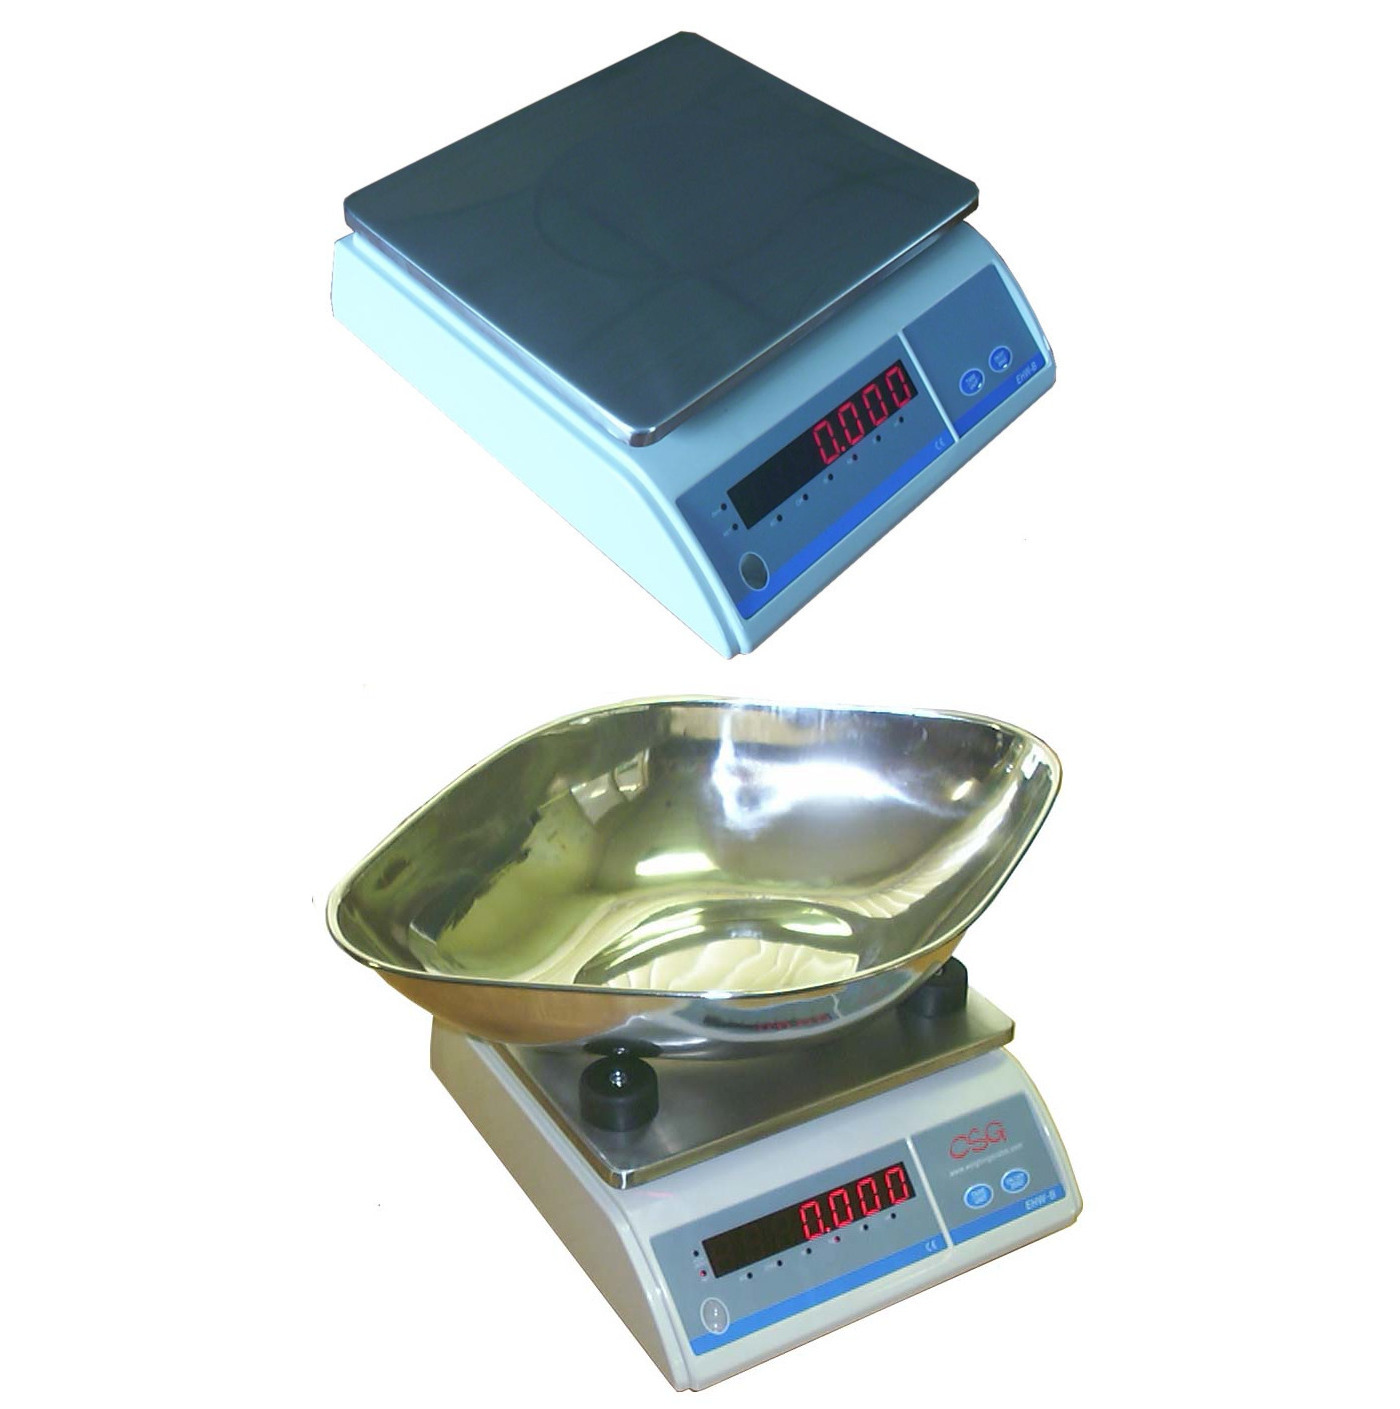 MEASURETEK EHW WEIGHING SCALE Low cost, simple to use portable electronic digital scale